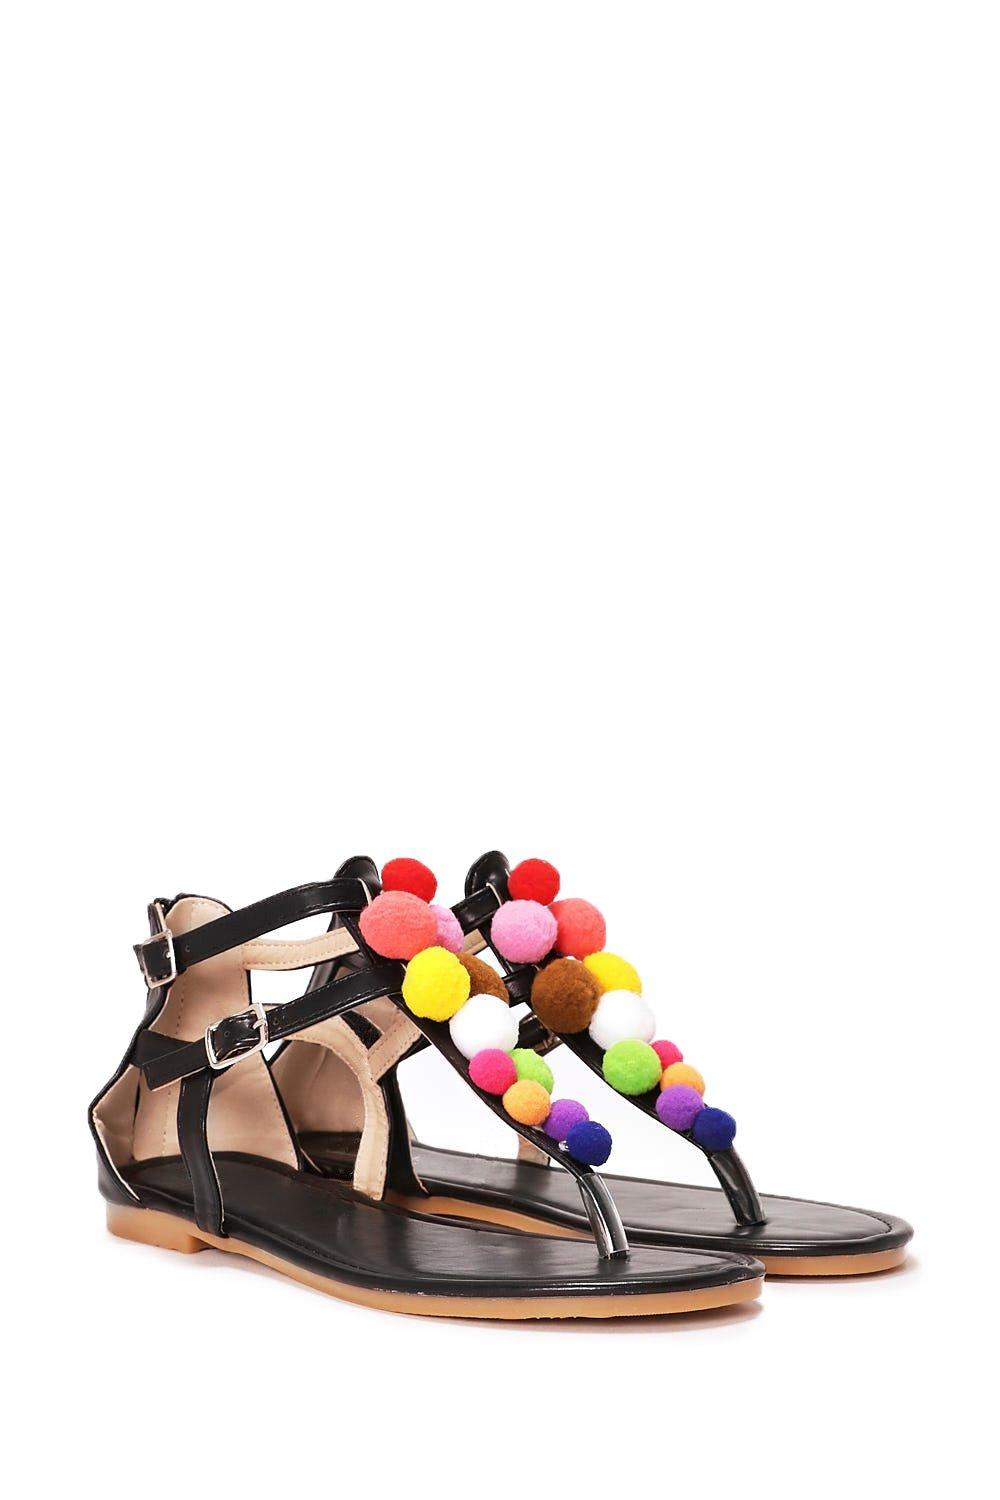 0bf2d14024c Have a Ball Pom Pom Sandal | Shop Clothes at Nasty Gal!